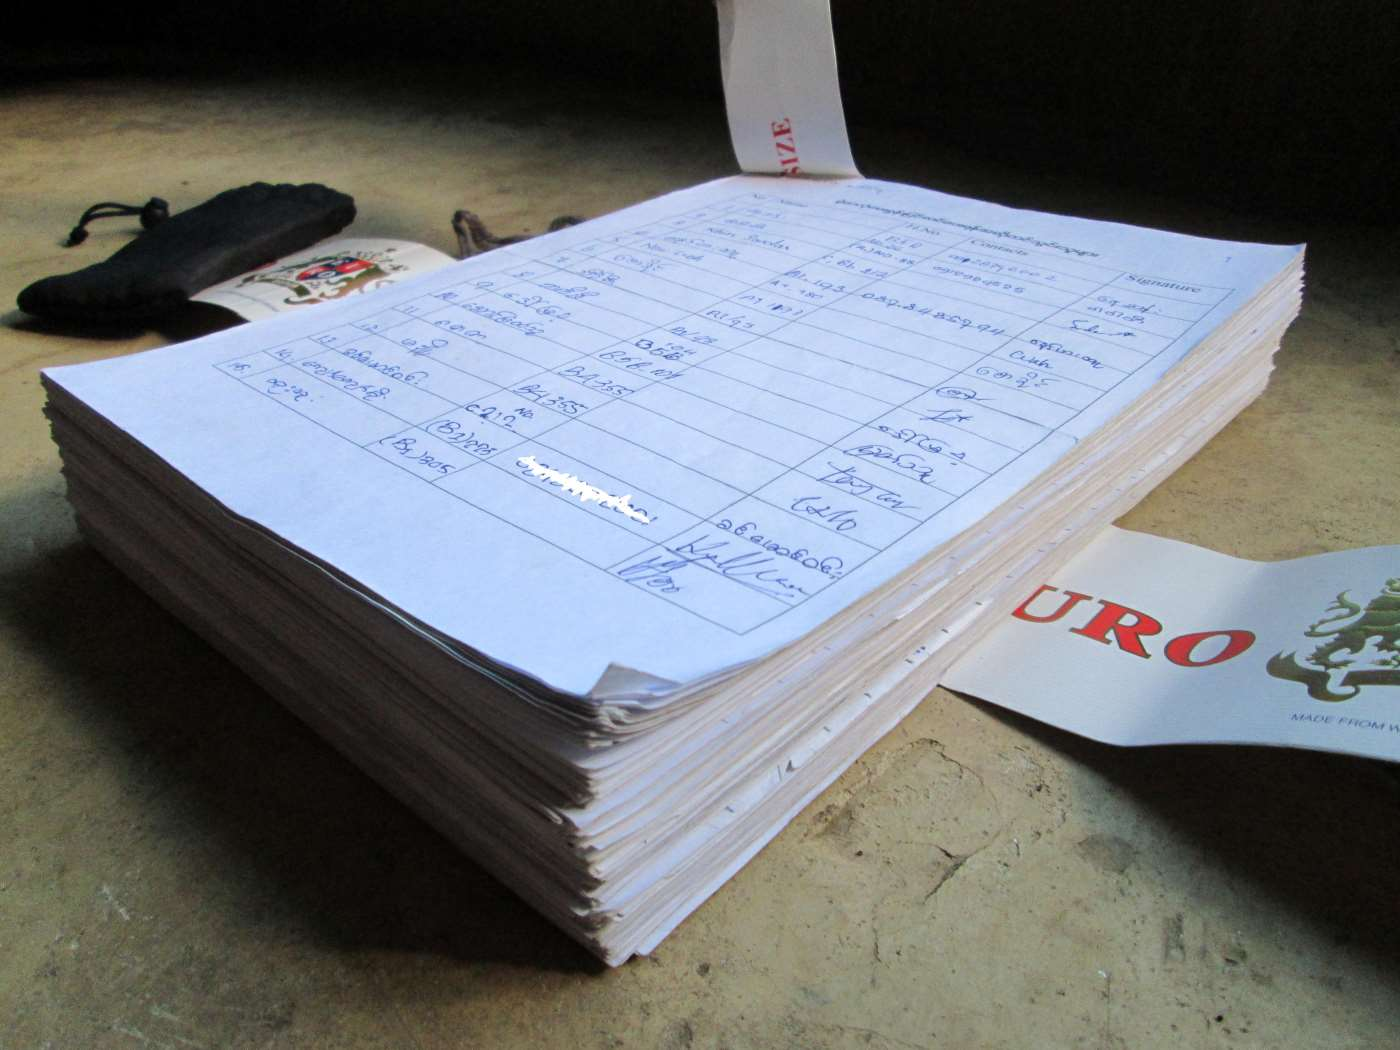 3,644 signatures, 275 pages